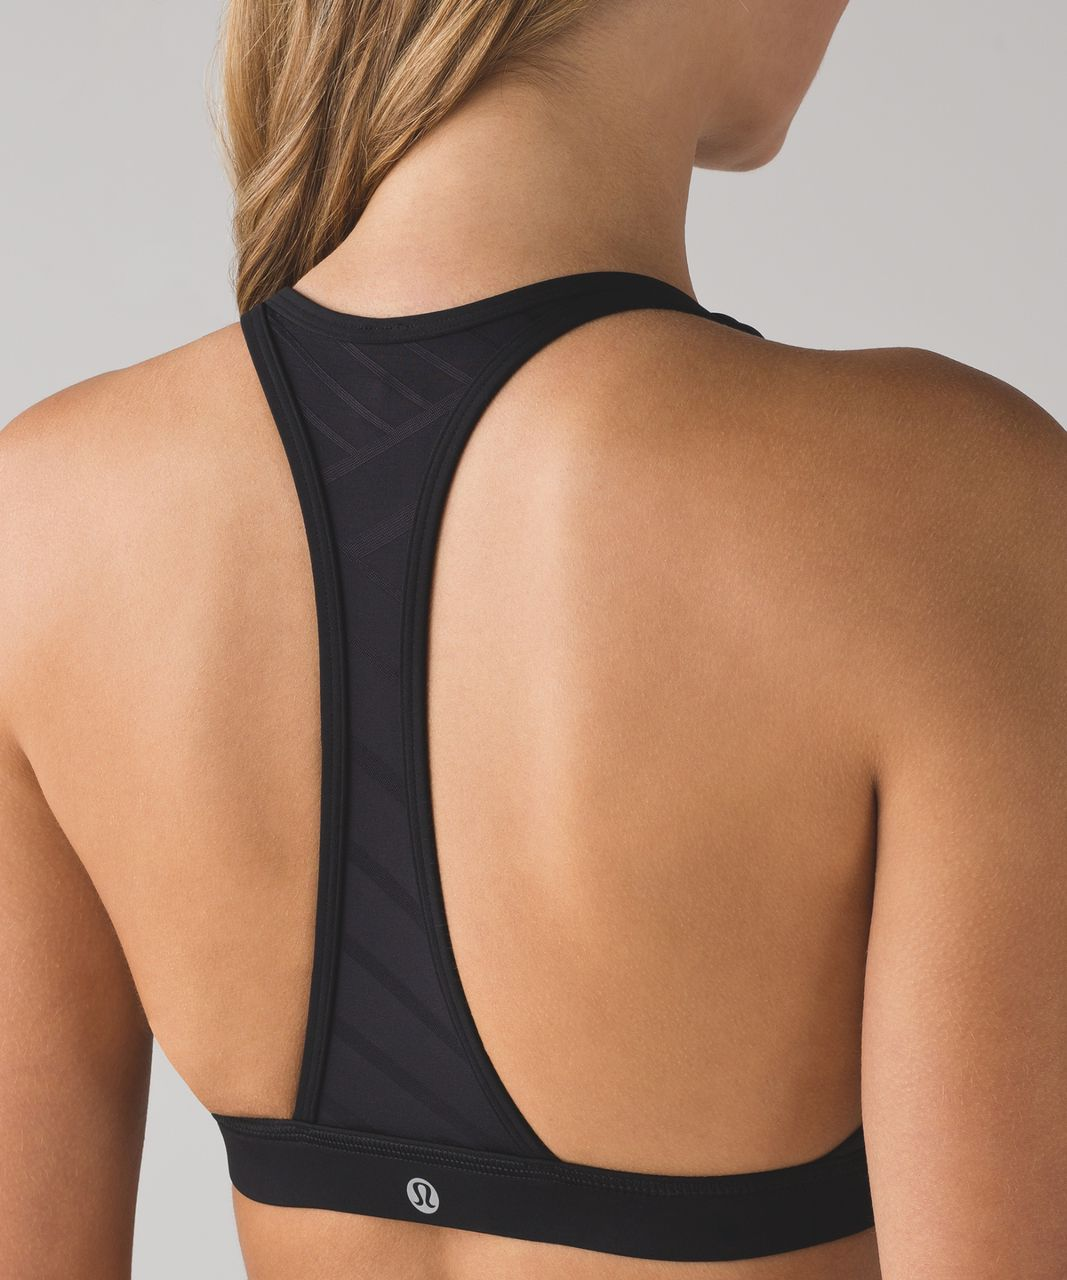 Lululemon Hot Like Agni Bra - Black